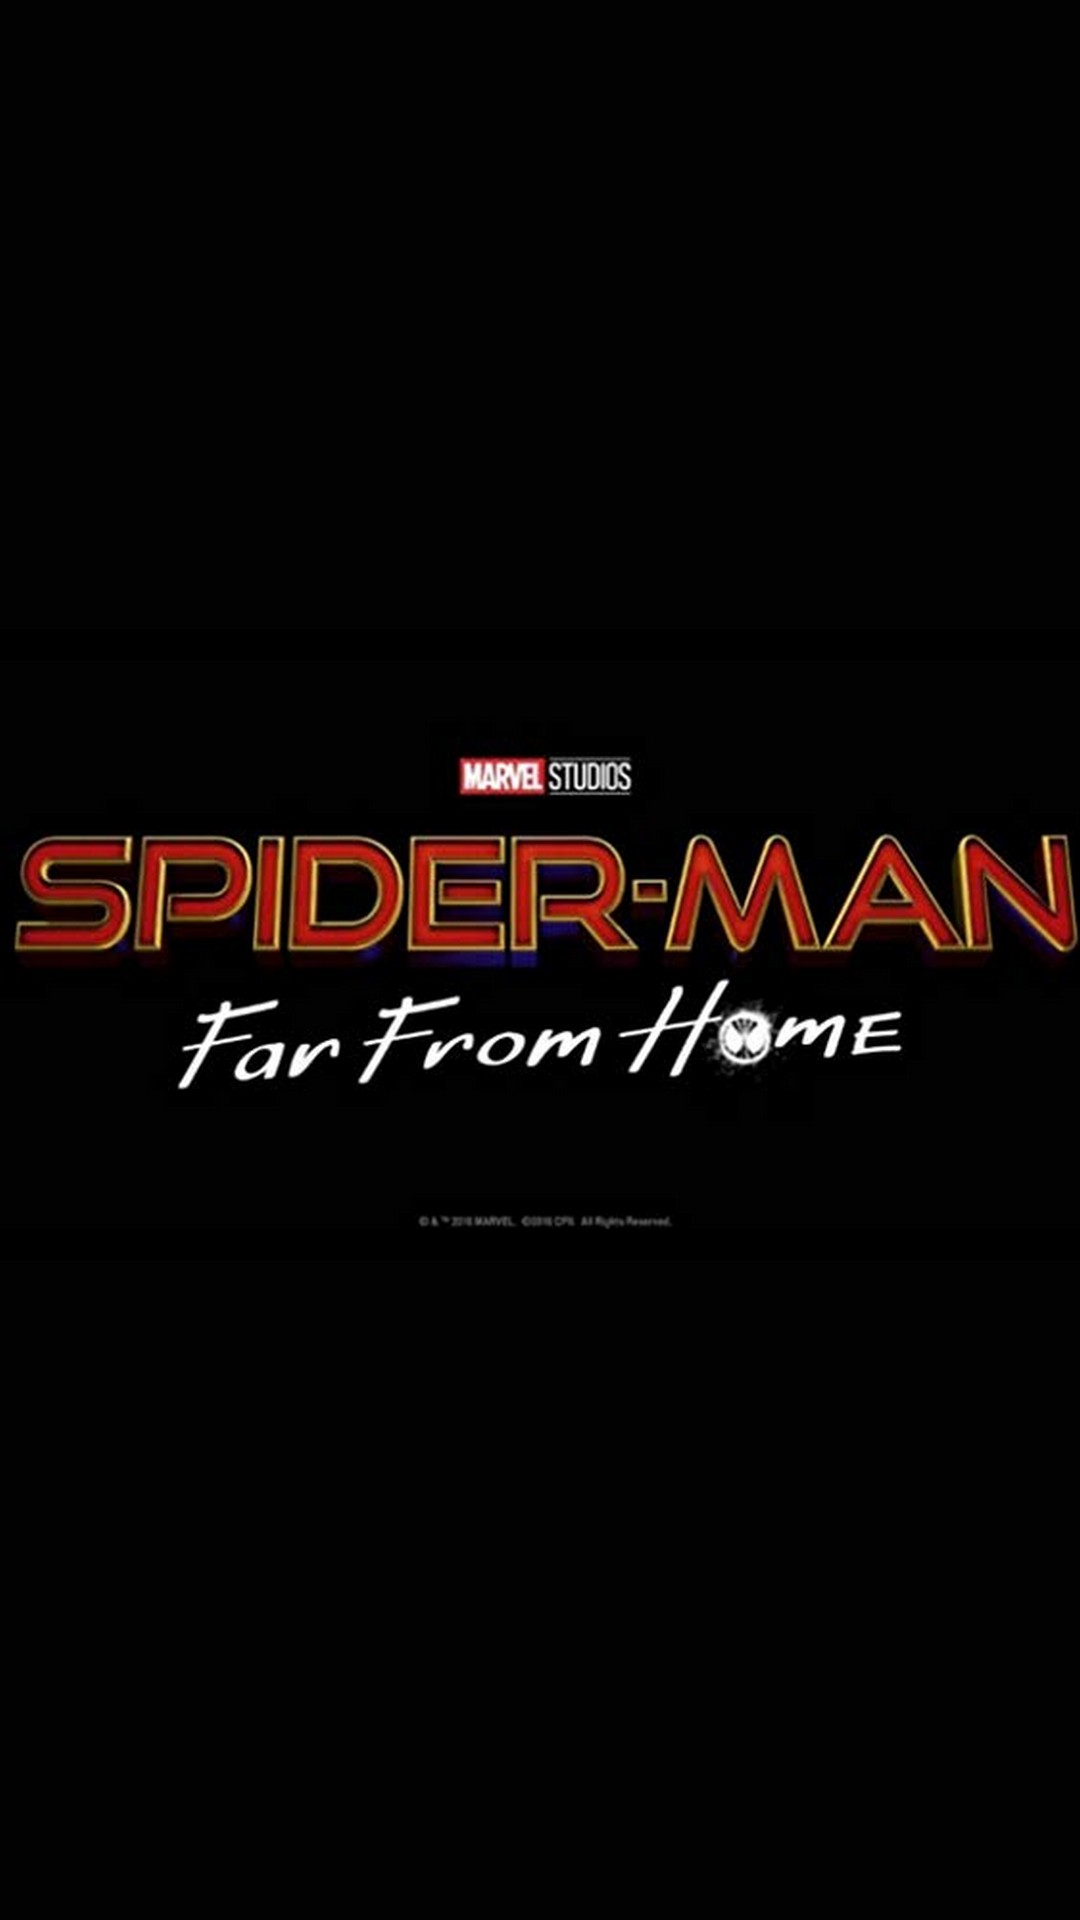 Spider-Man Far From Home Android Wallpaper